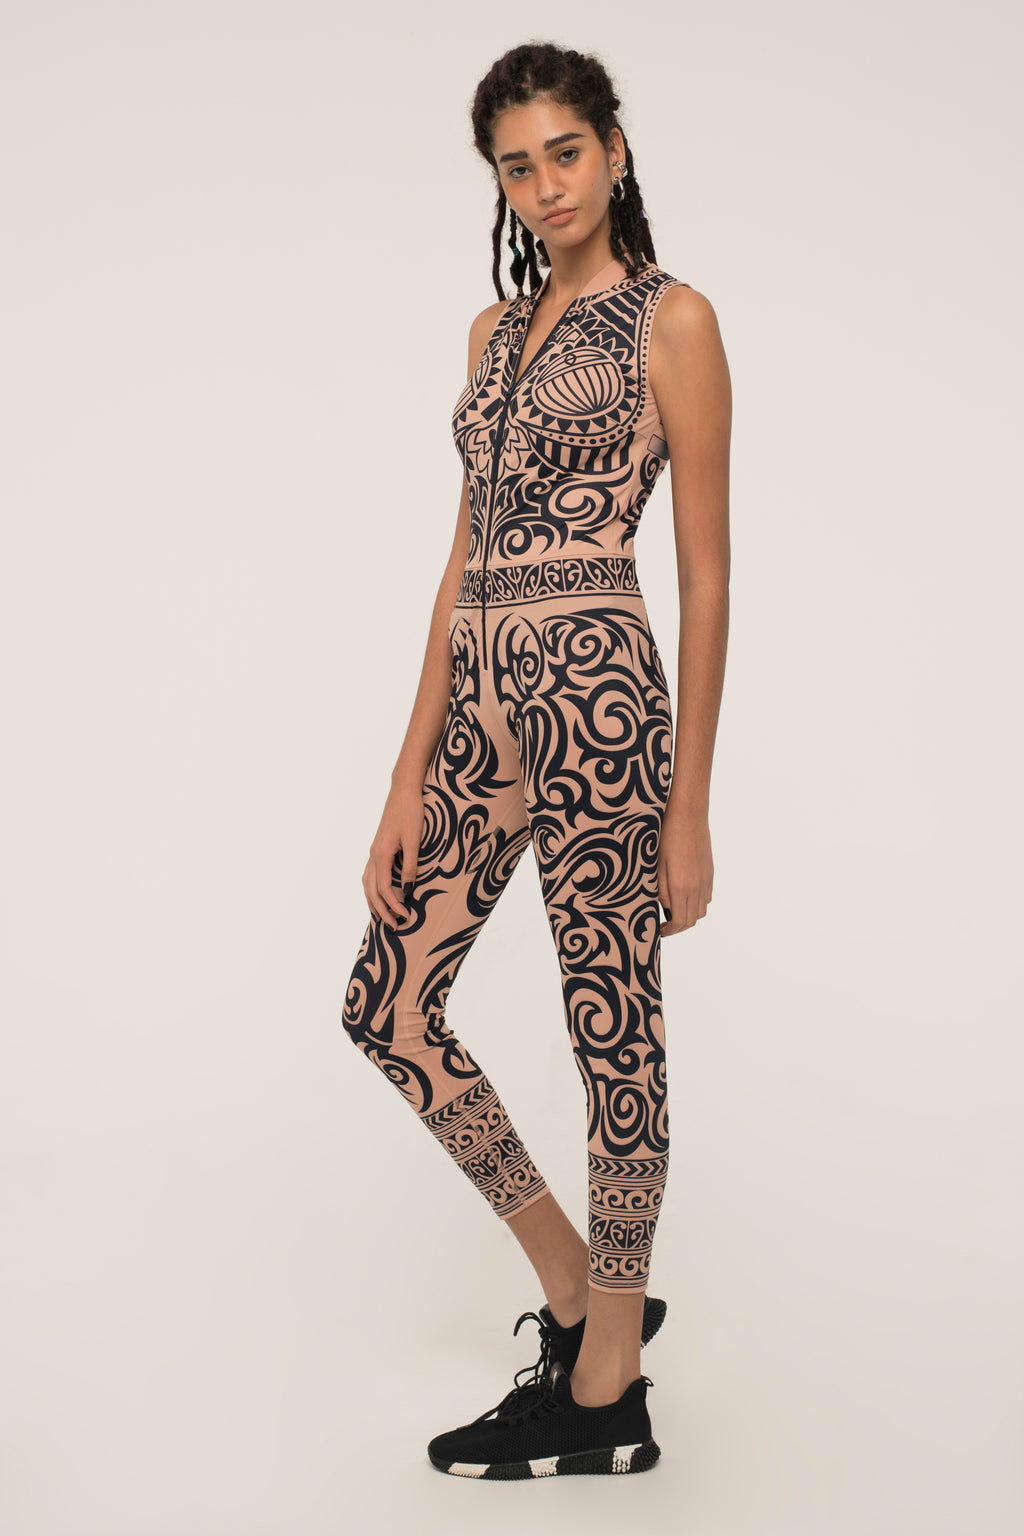 Totemic Tattoo Bodésuit™